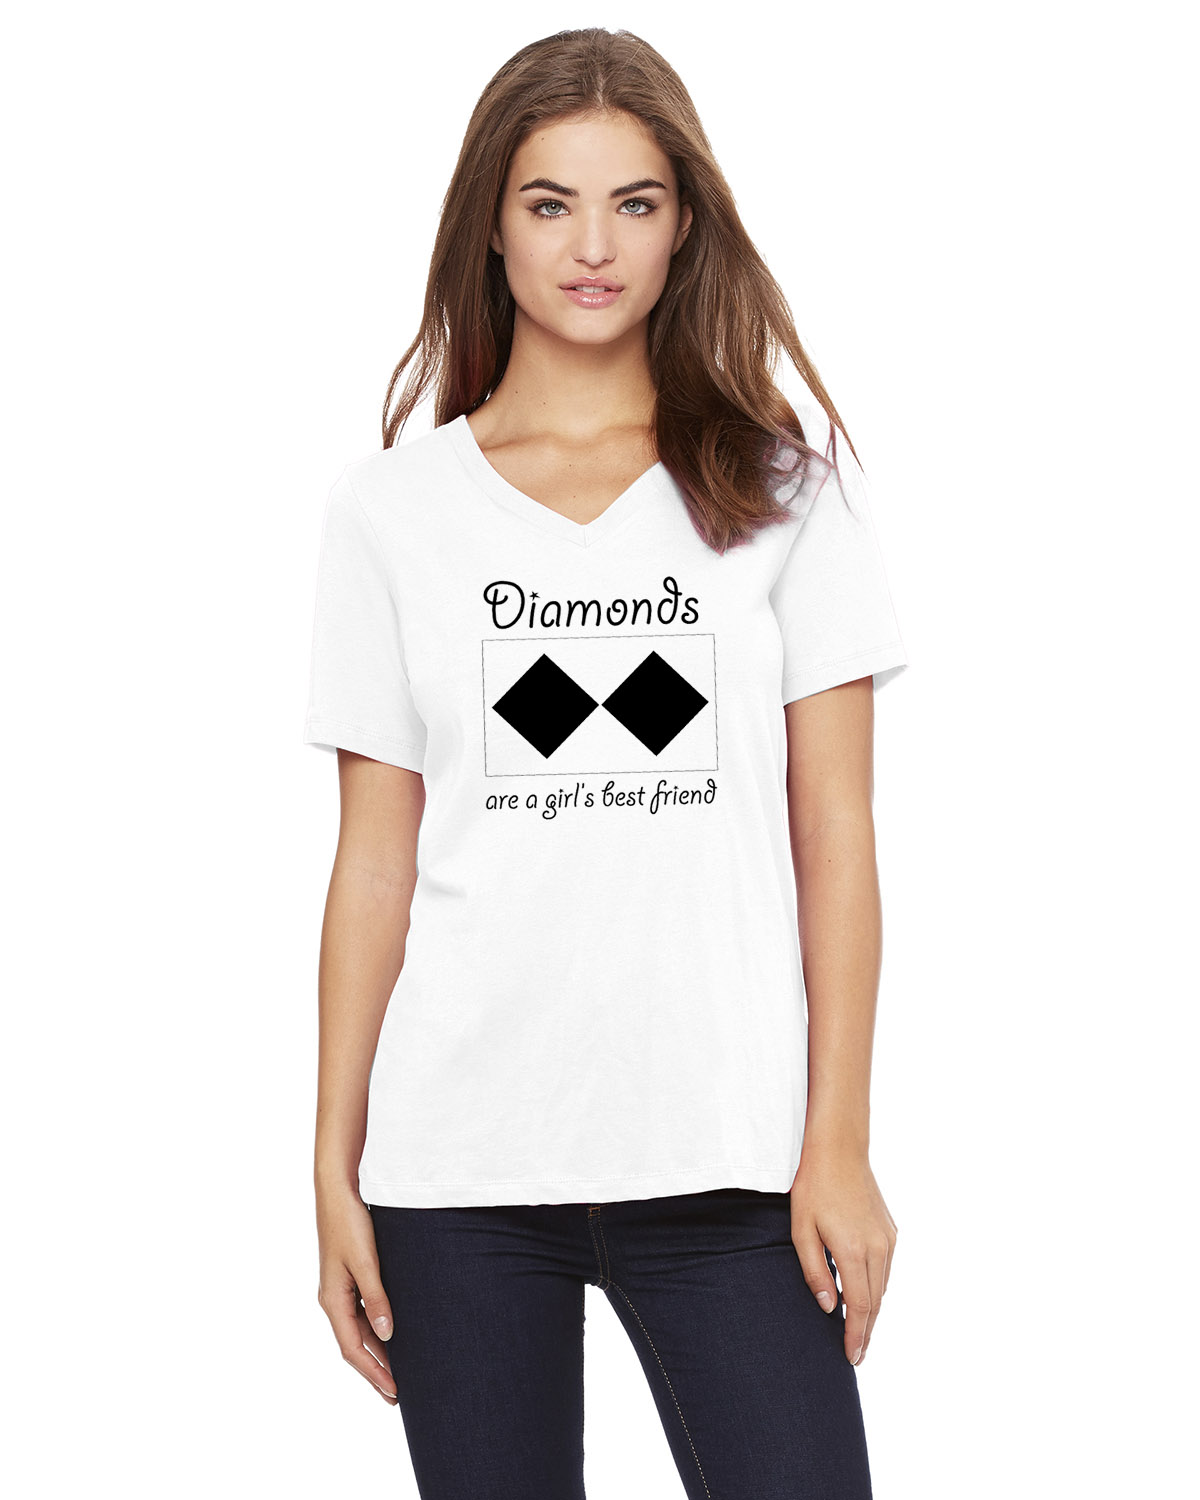 Women's Short Sleeve V-neck T-Shirt (White/Black)